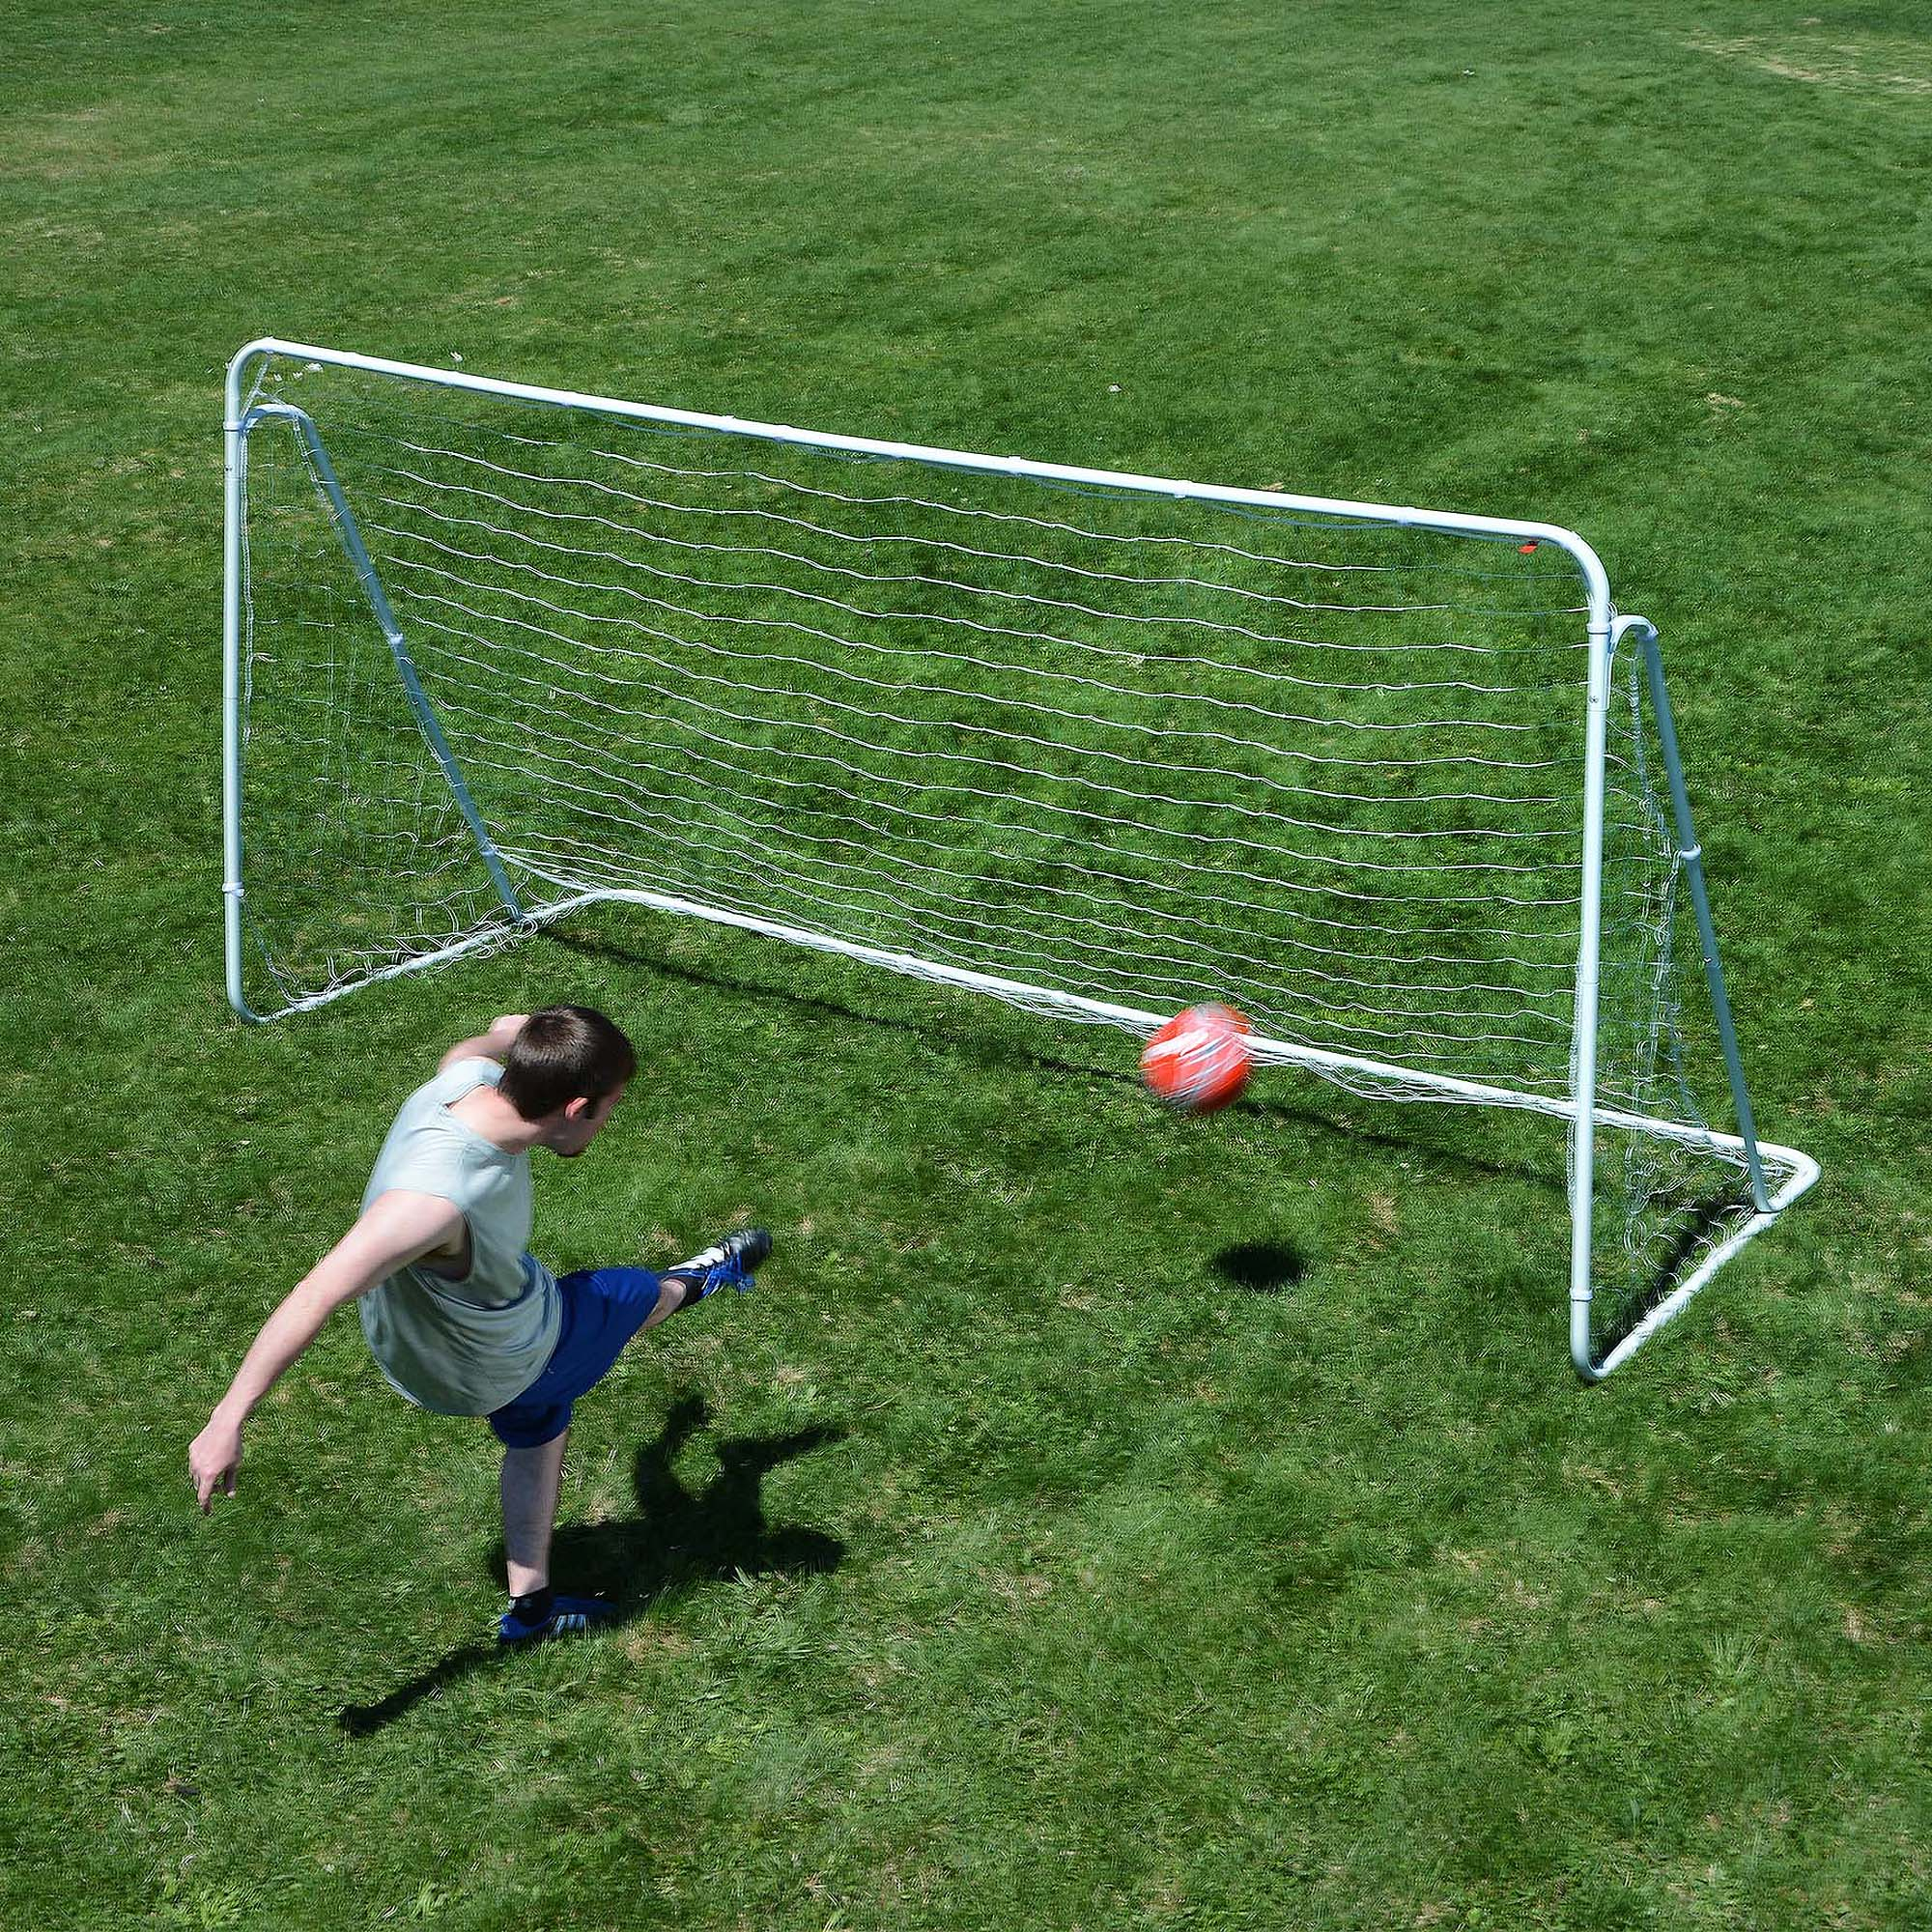 Lion Sports 12' x 6' Soccer Goal by Generic